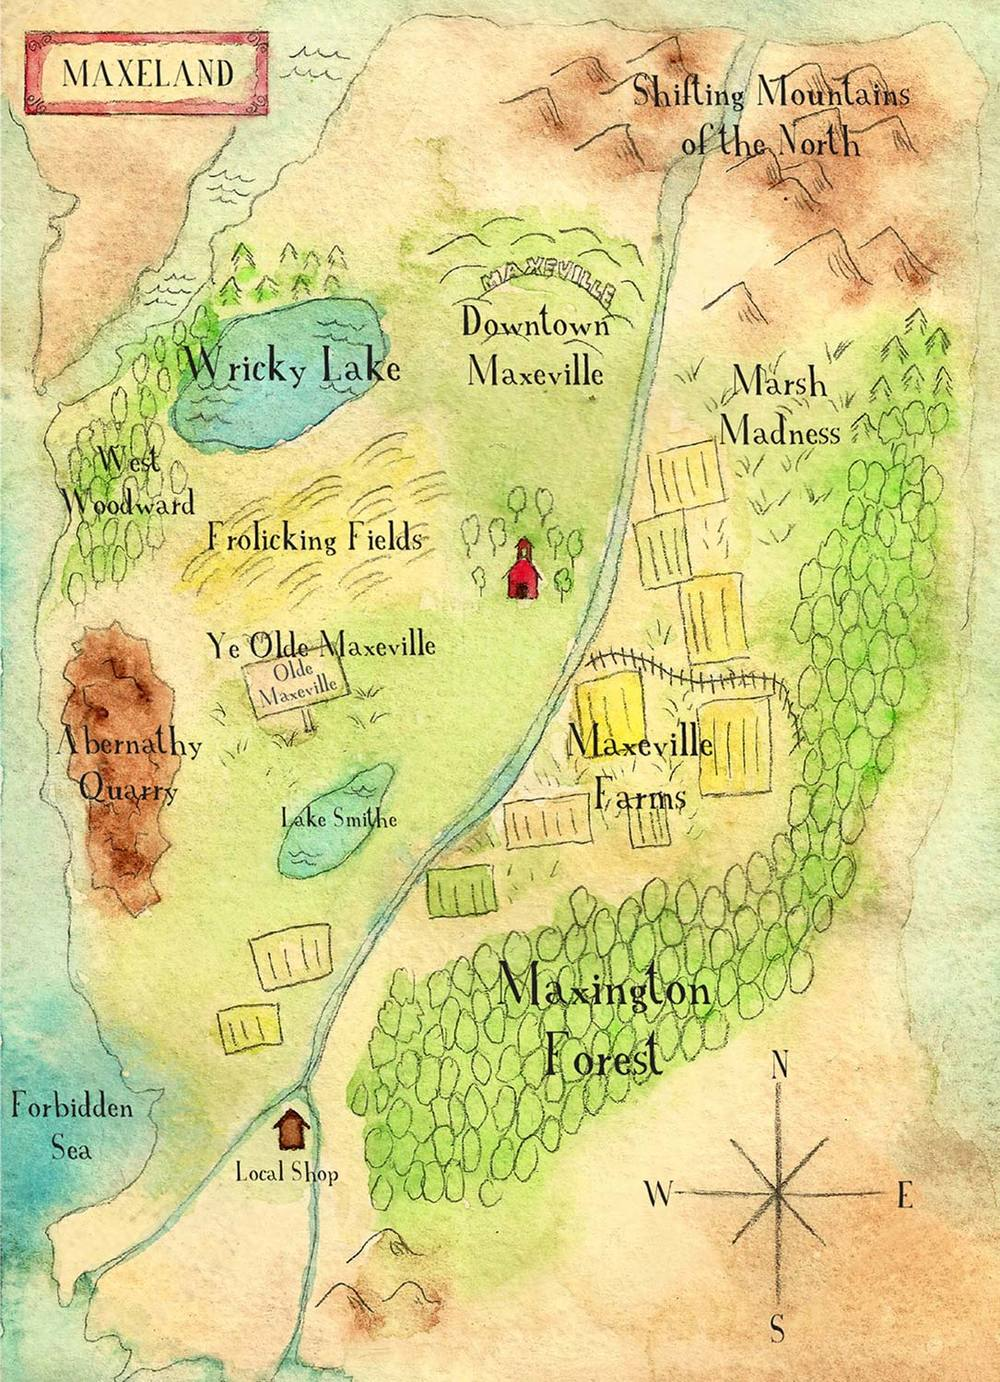 Original Maxeville Map